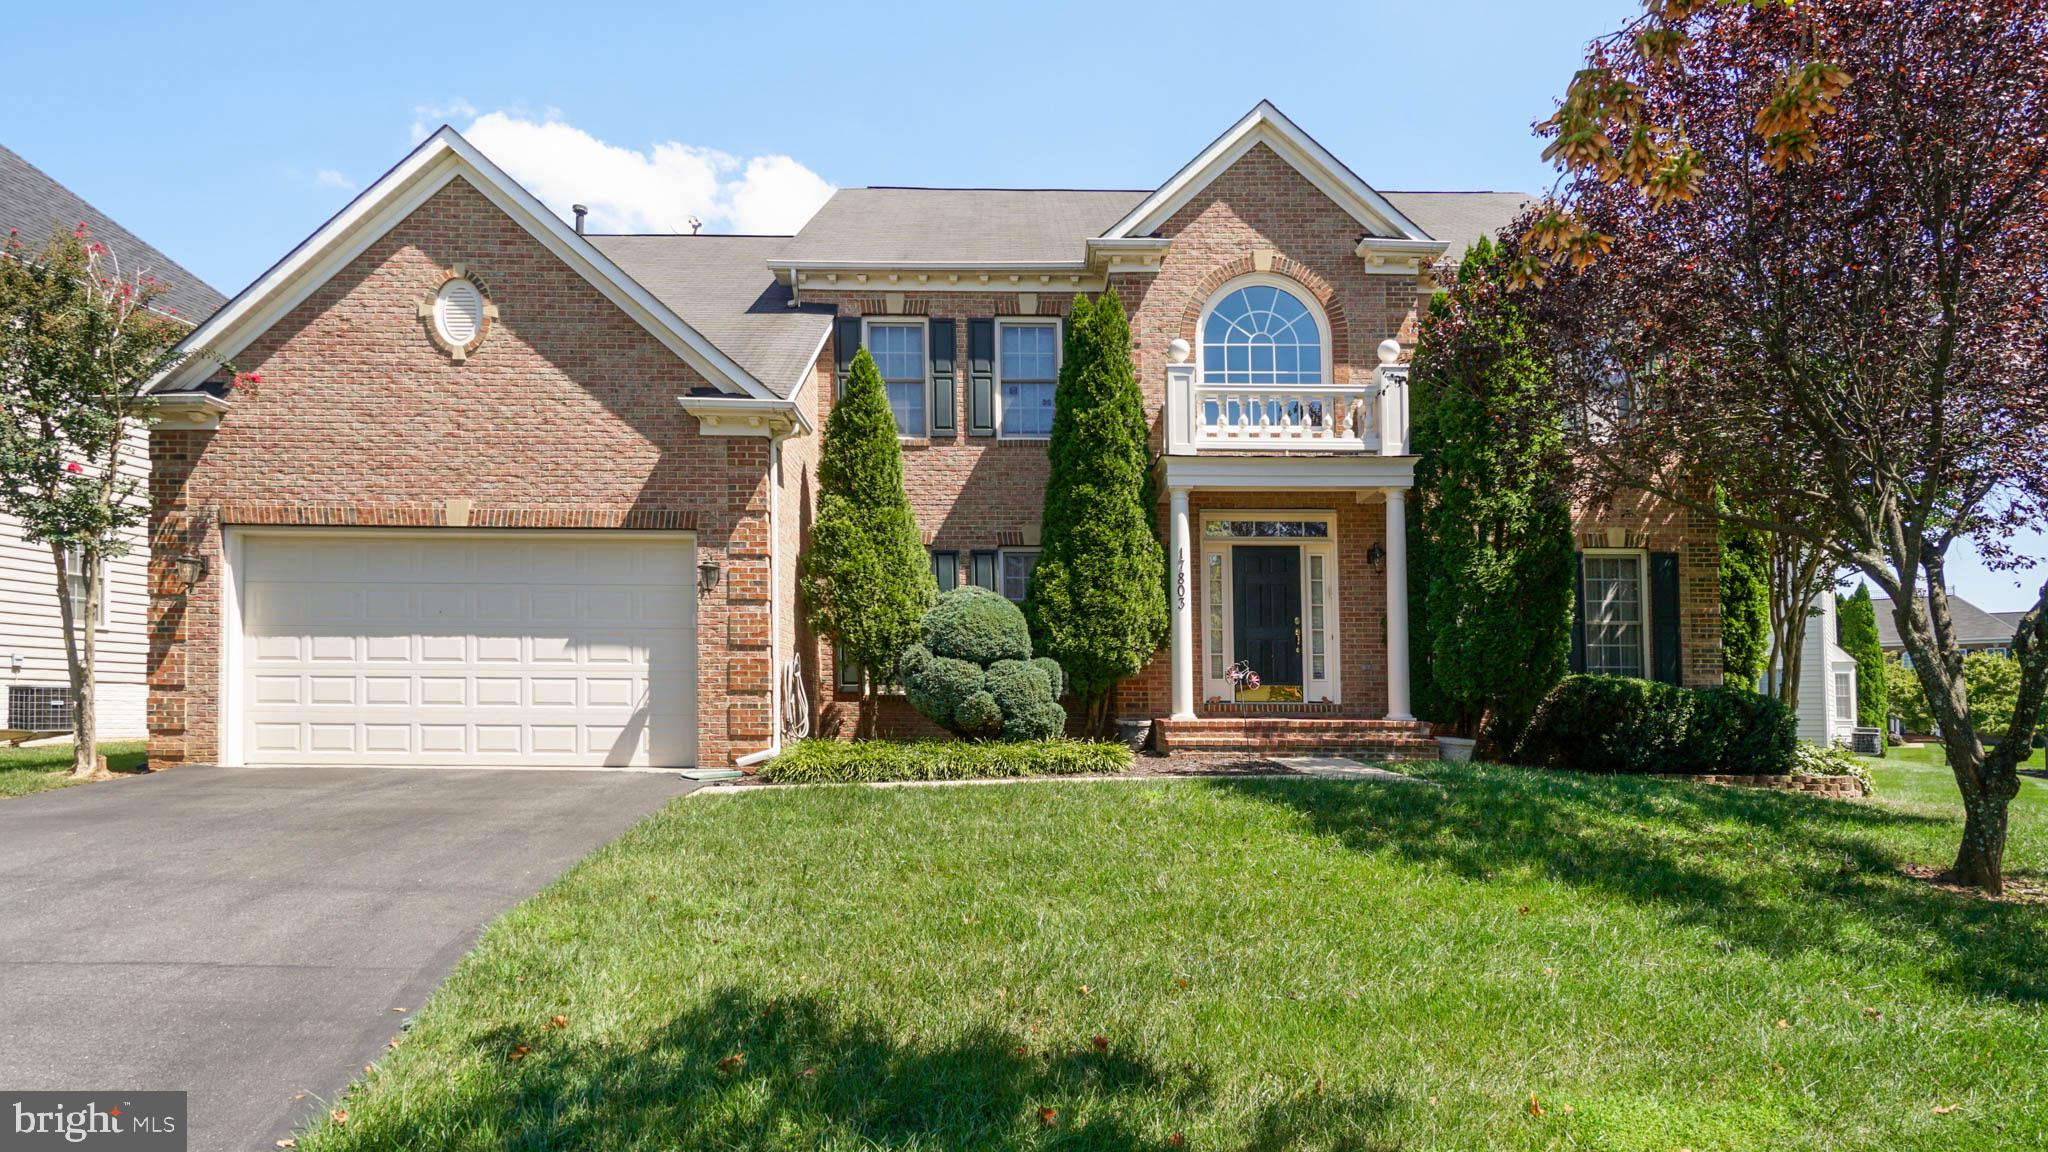 17803 BROMFIELD PLACE, GERMANTOWN, MD 20874